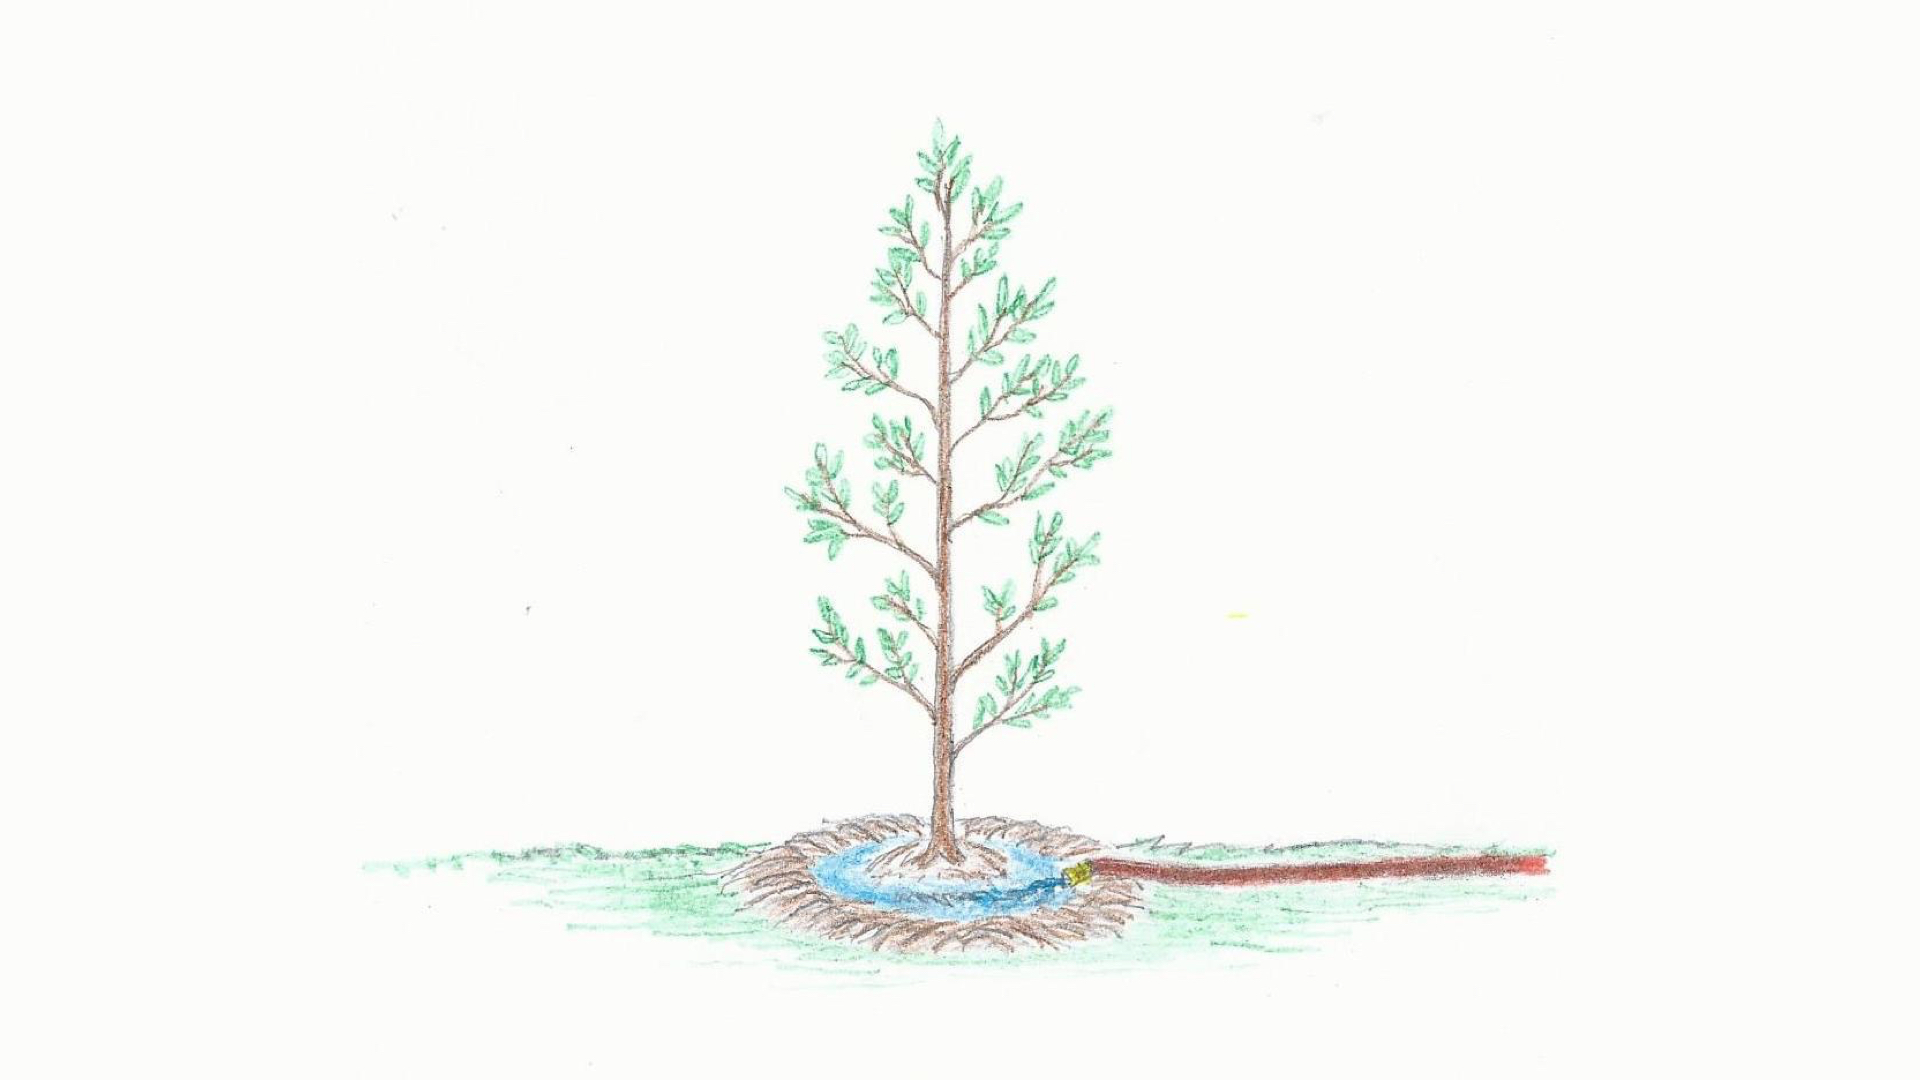 Landscape Gardening Planting and Watering A Tree Anne-of-Green-Gardens